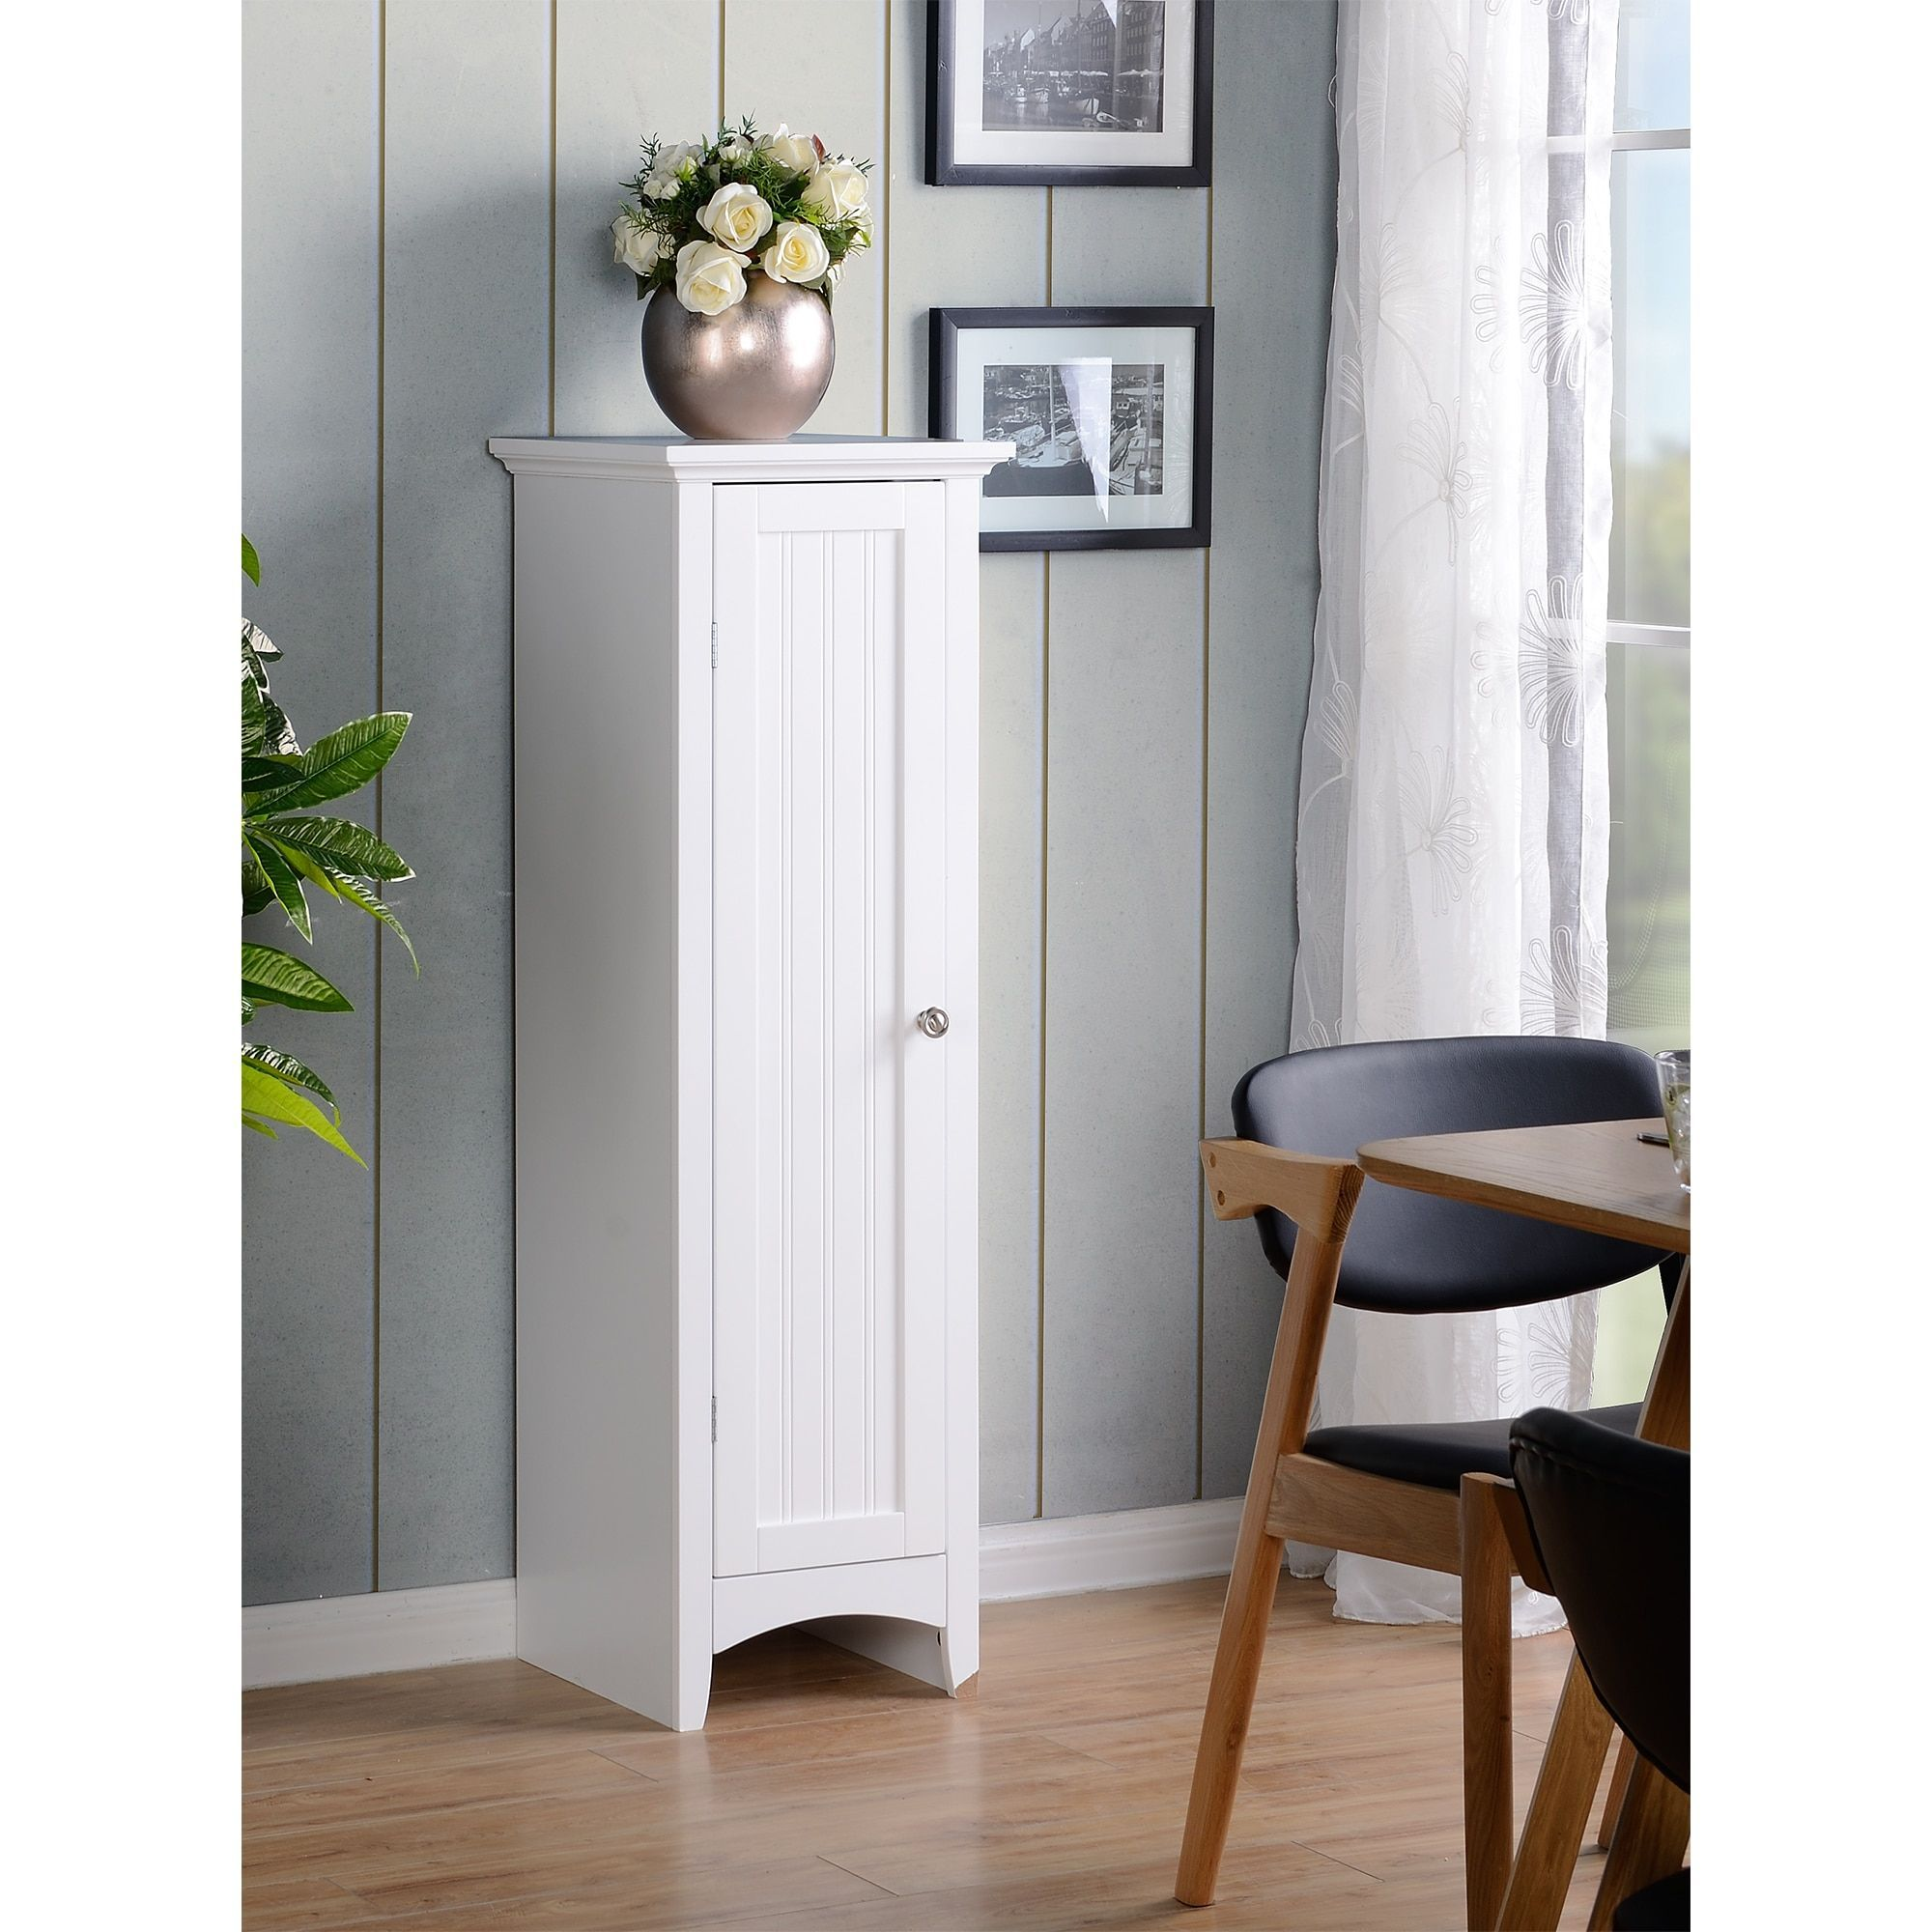 Classics os home and office white one door kitchen storage pantry